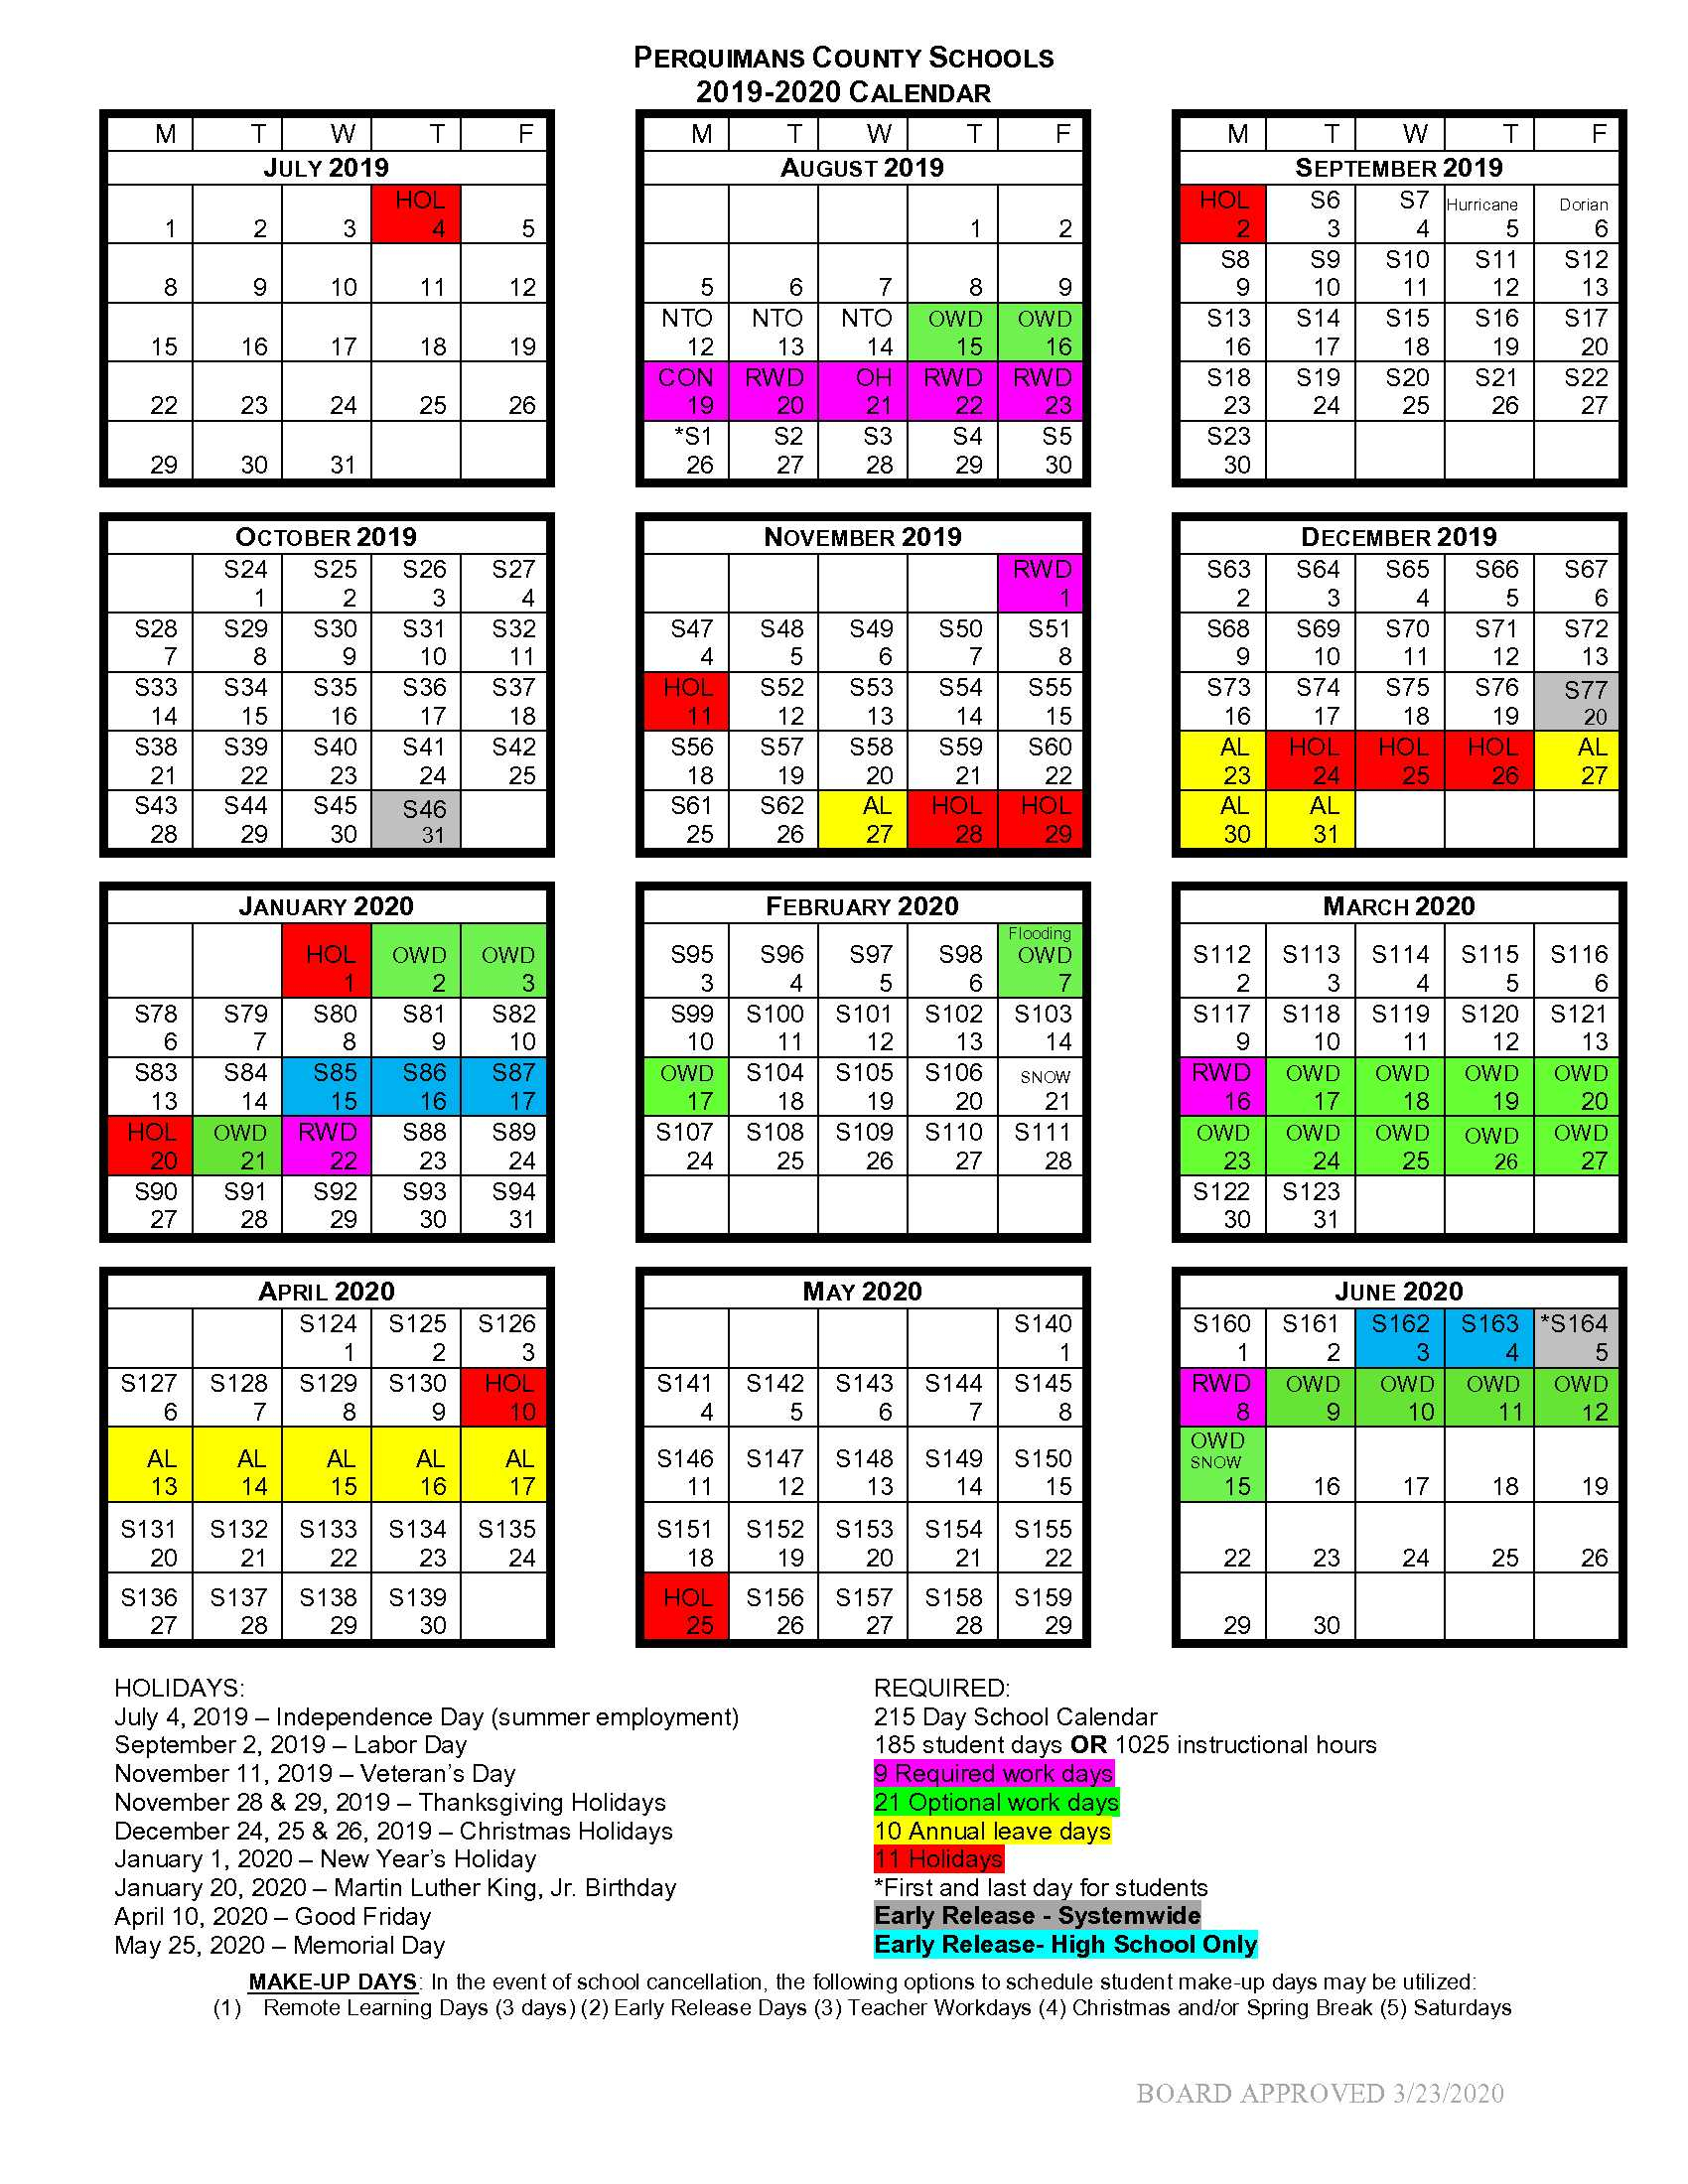 School Calendar 2020-2021 - Perquimans School District throughout Board Of Education Calendar 2021 2020 Bibb County